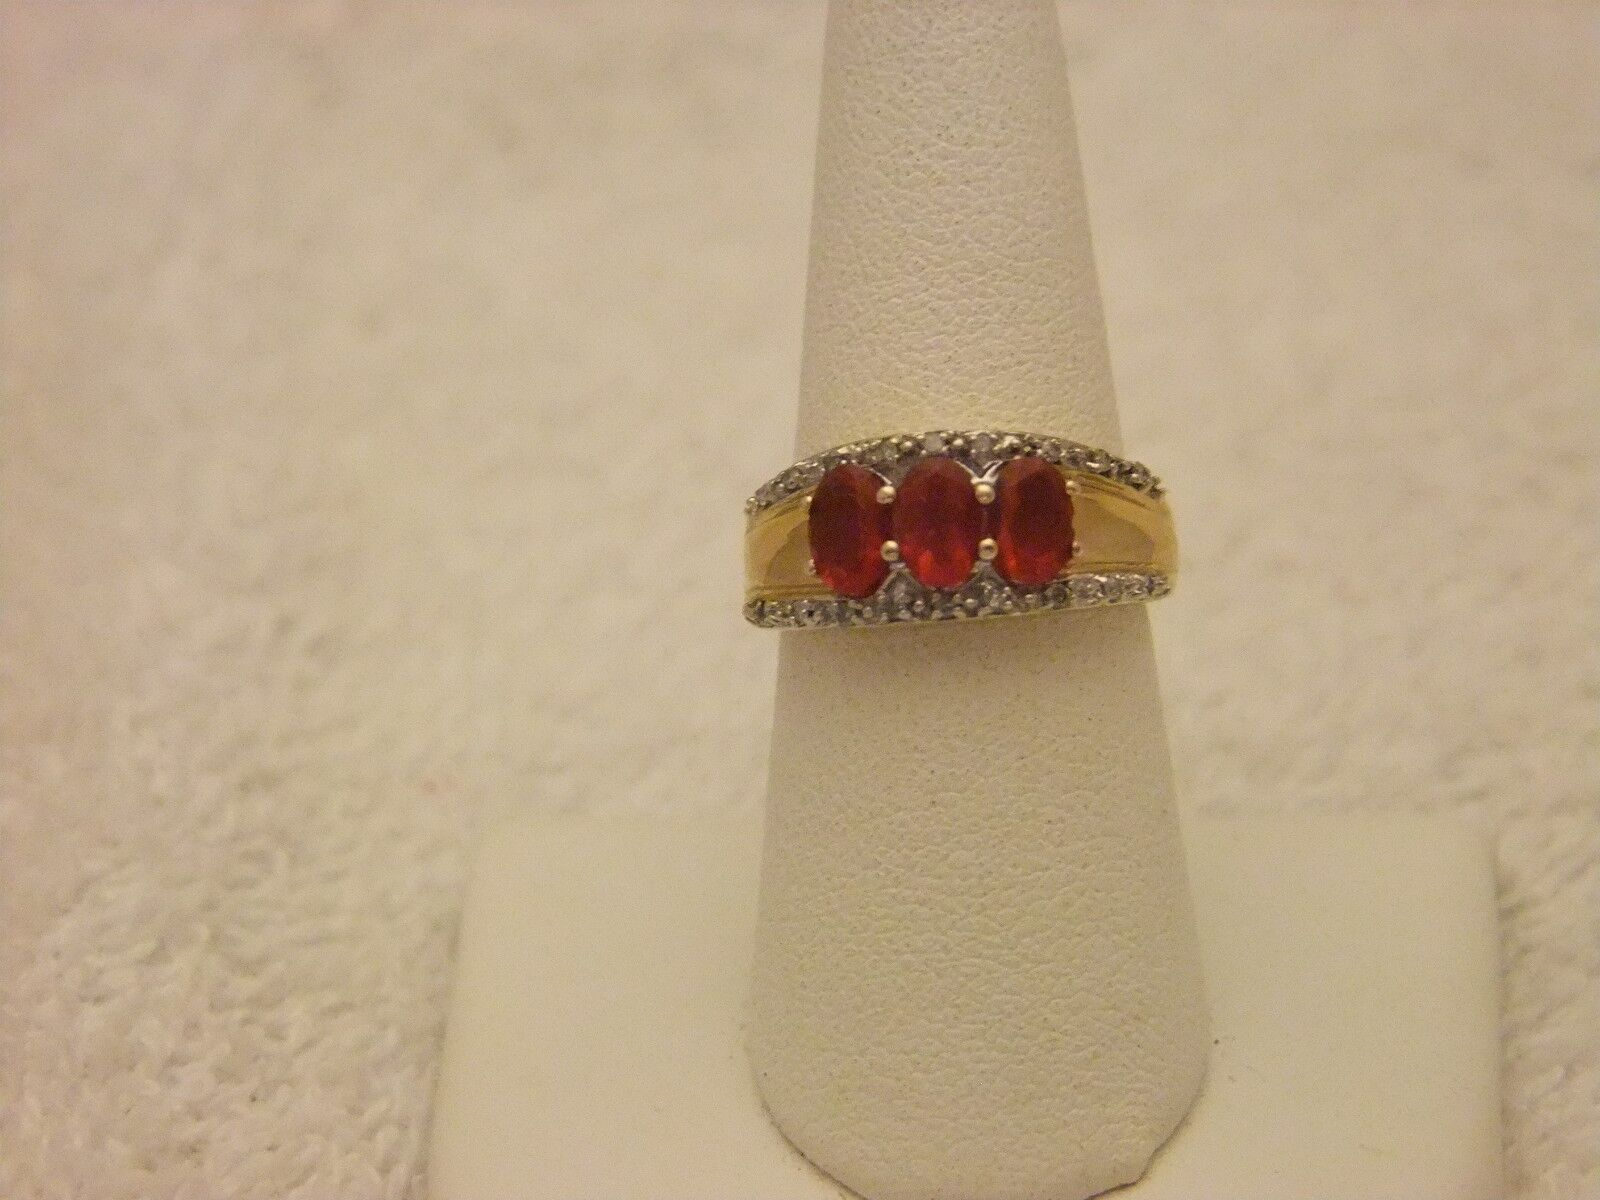 14  KT  YG  FIRE OPAL RING   DIAMOND ACCENTS